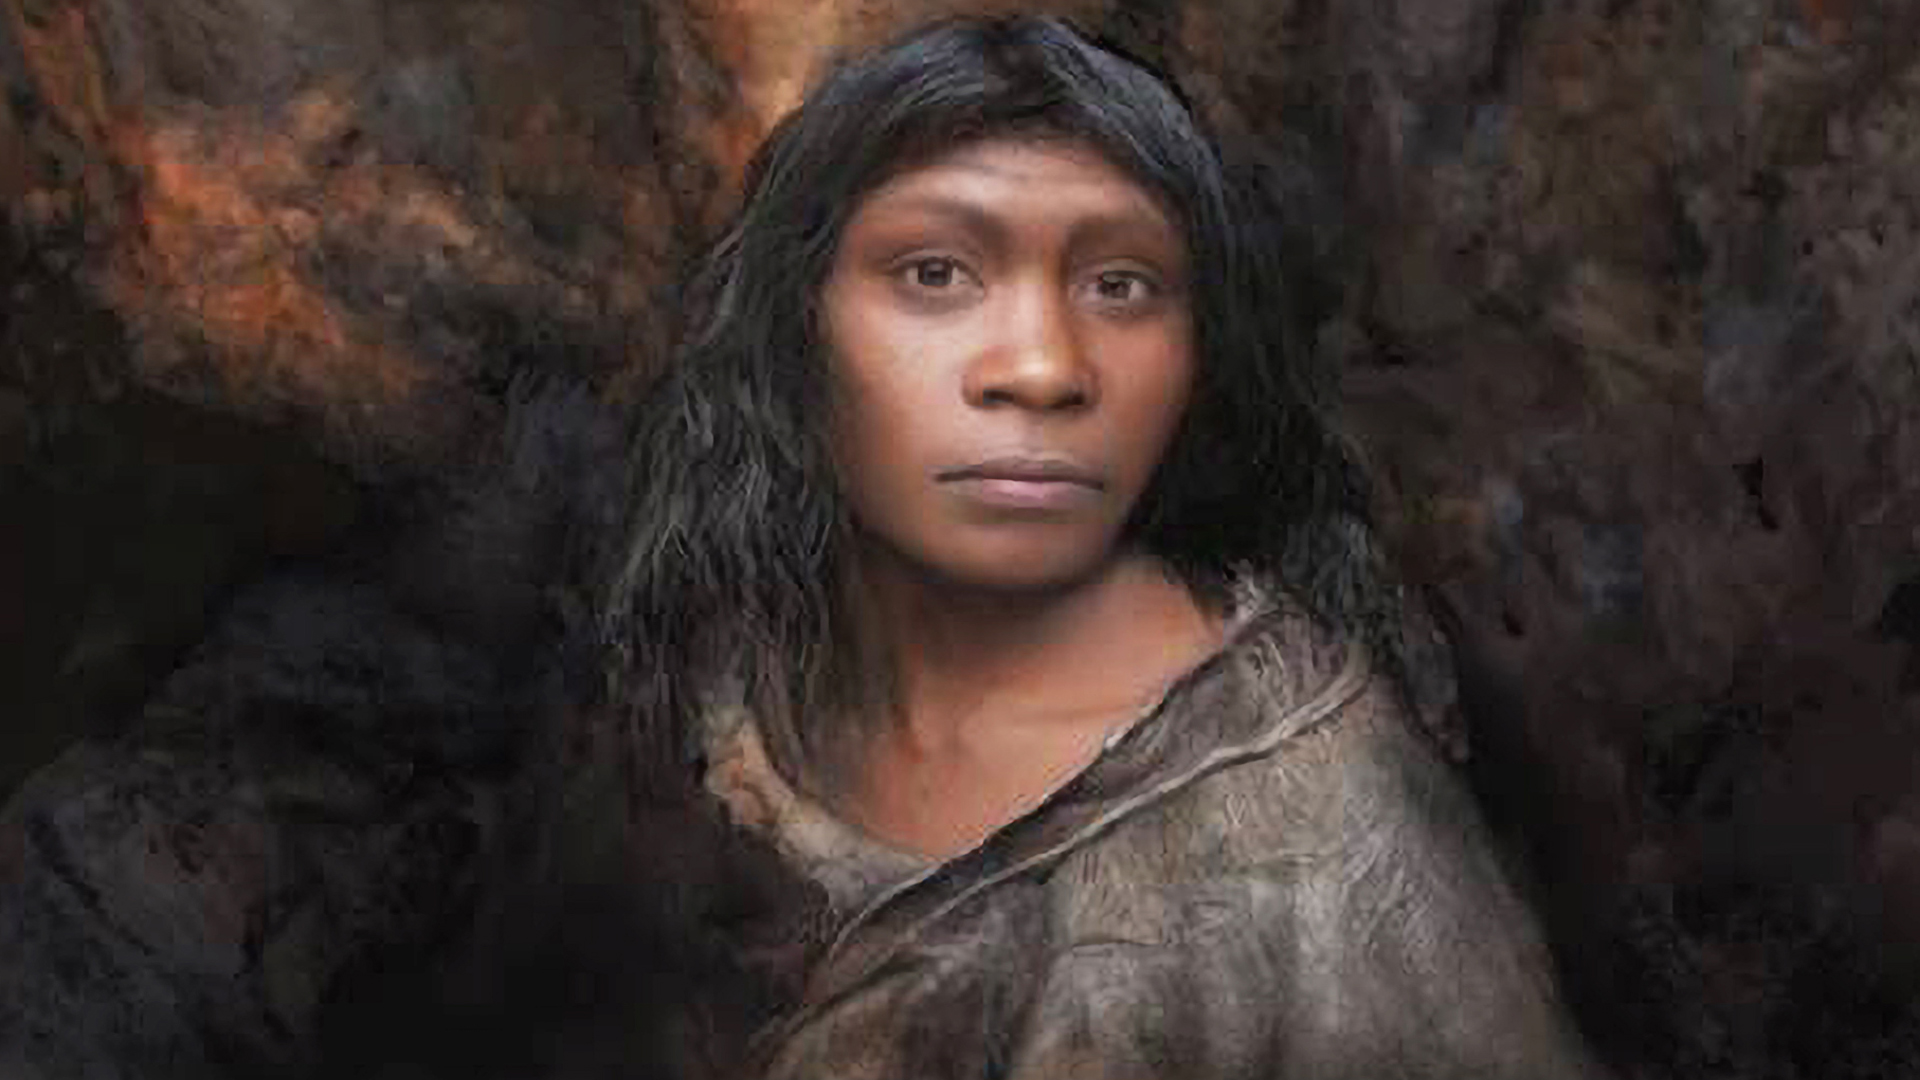 Chew-Rassic: Ancient Human Eaten 800,000 Years Ago By Cannibals Was A Girl, Reveal Experts